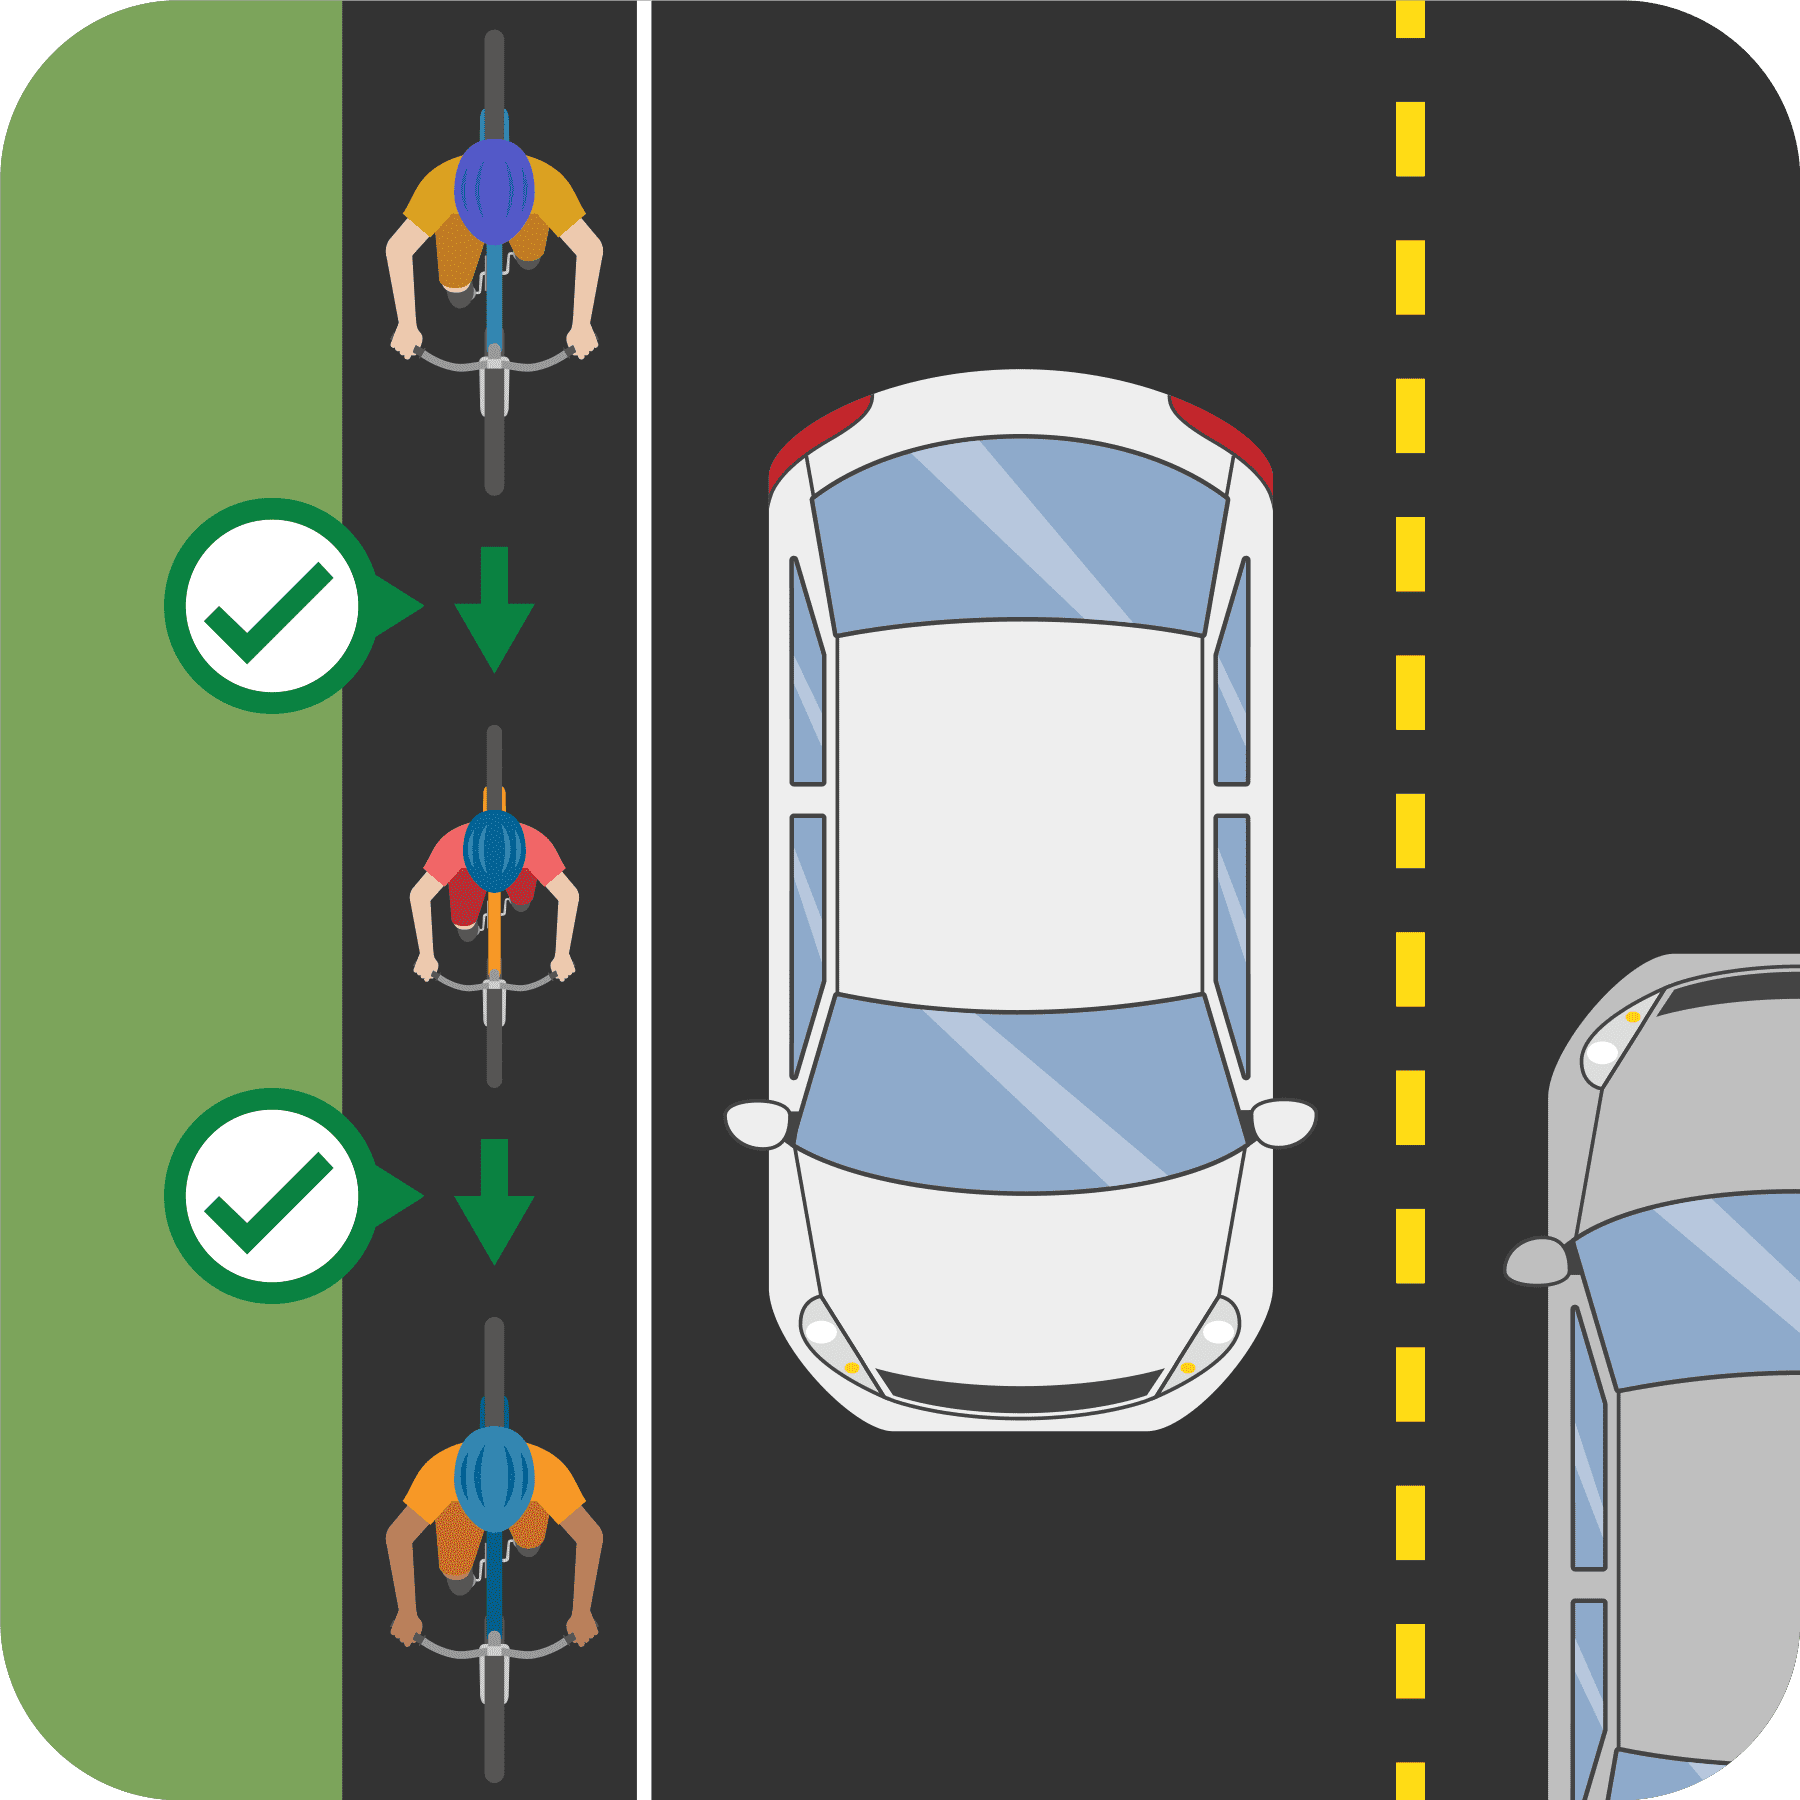 Cycling safety with traffic in single file.